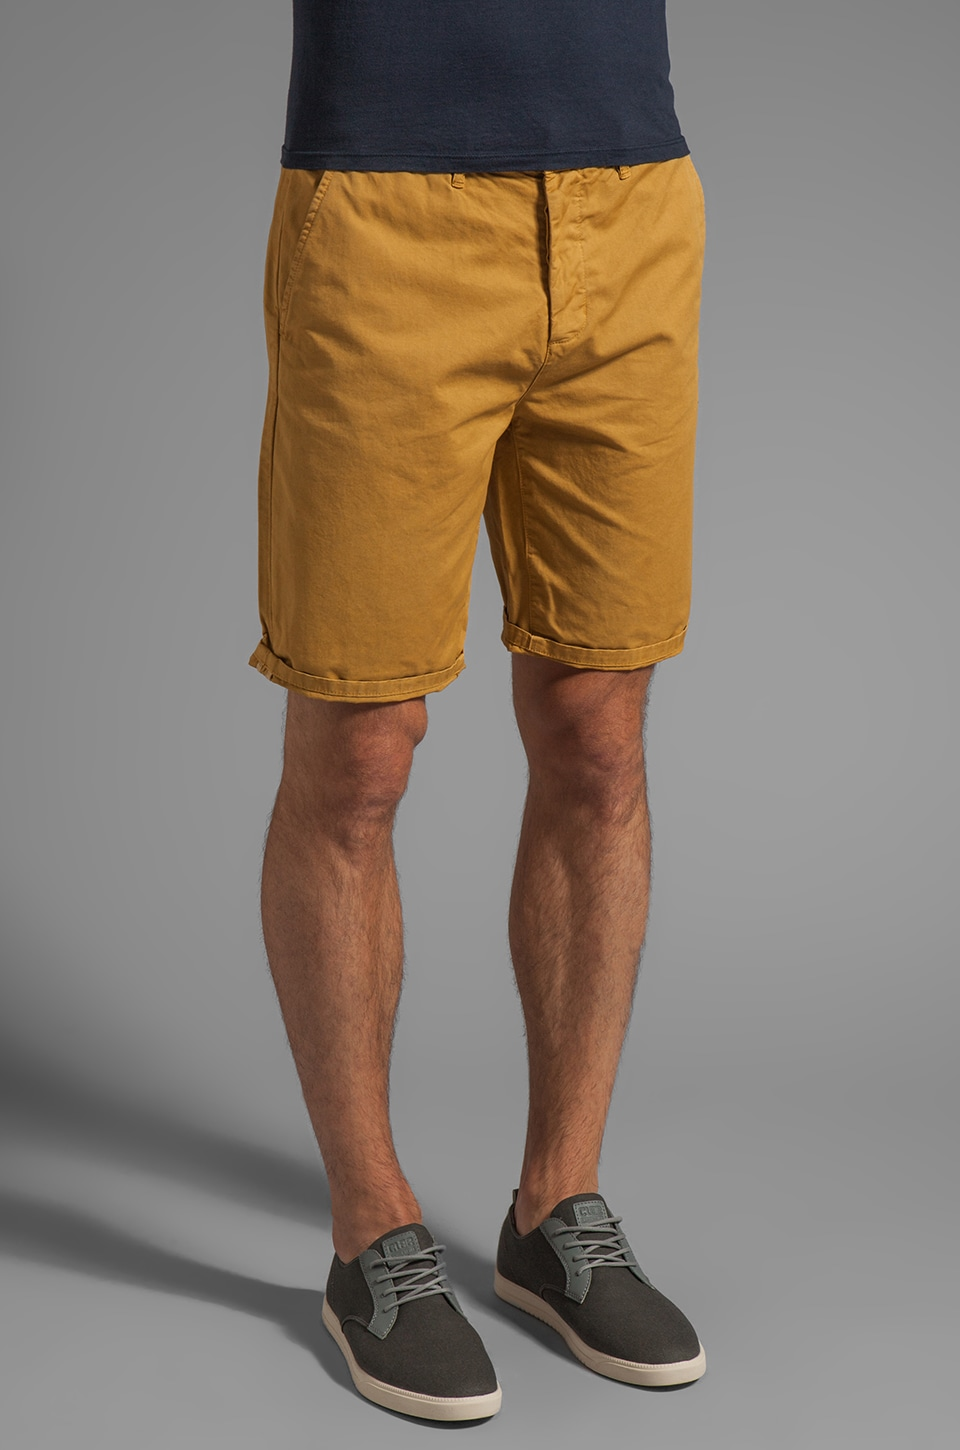 Obey Classique Short in Inca Gold